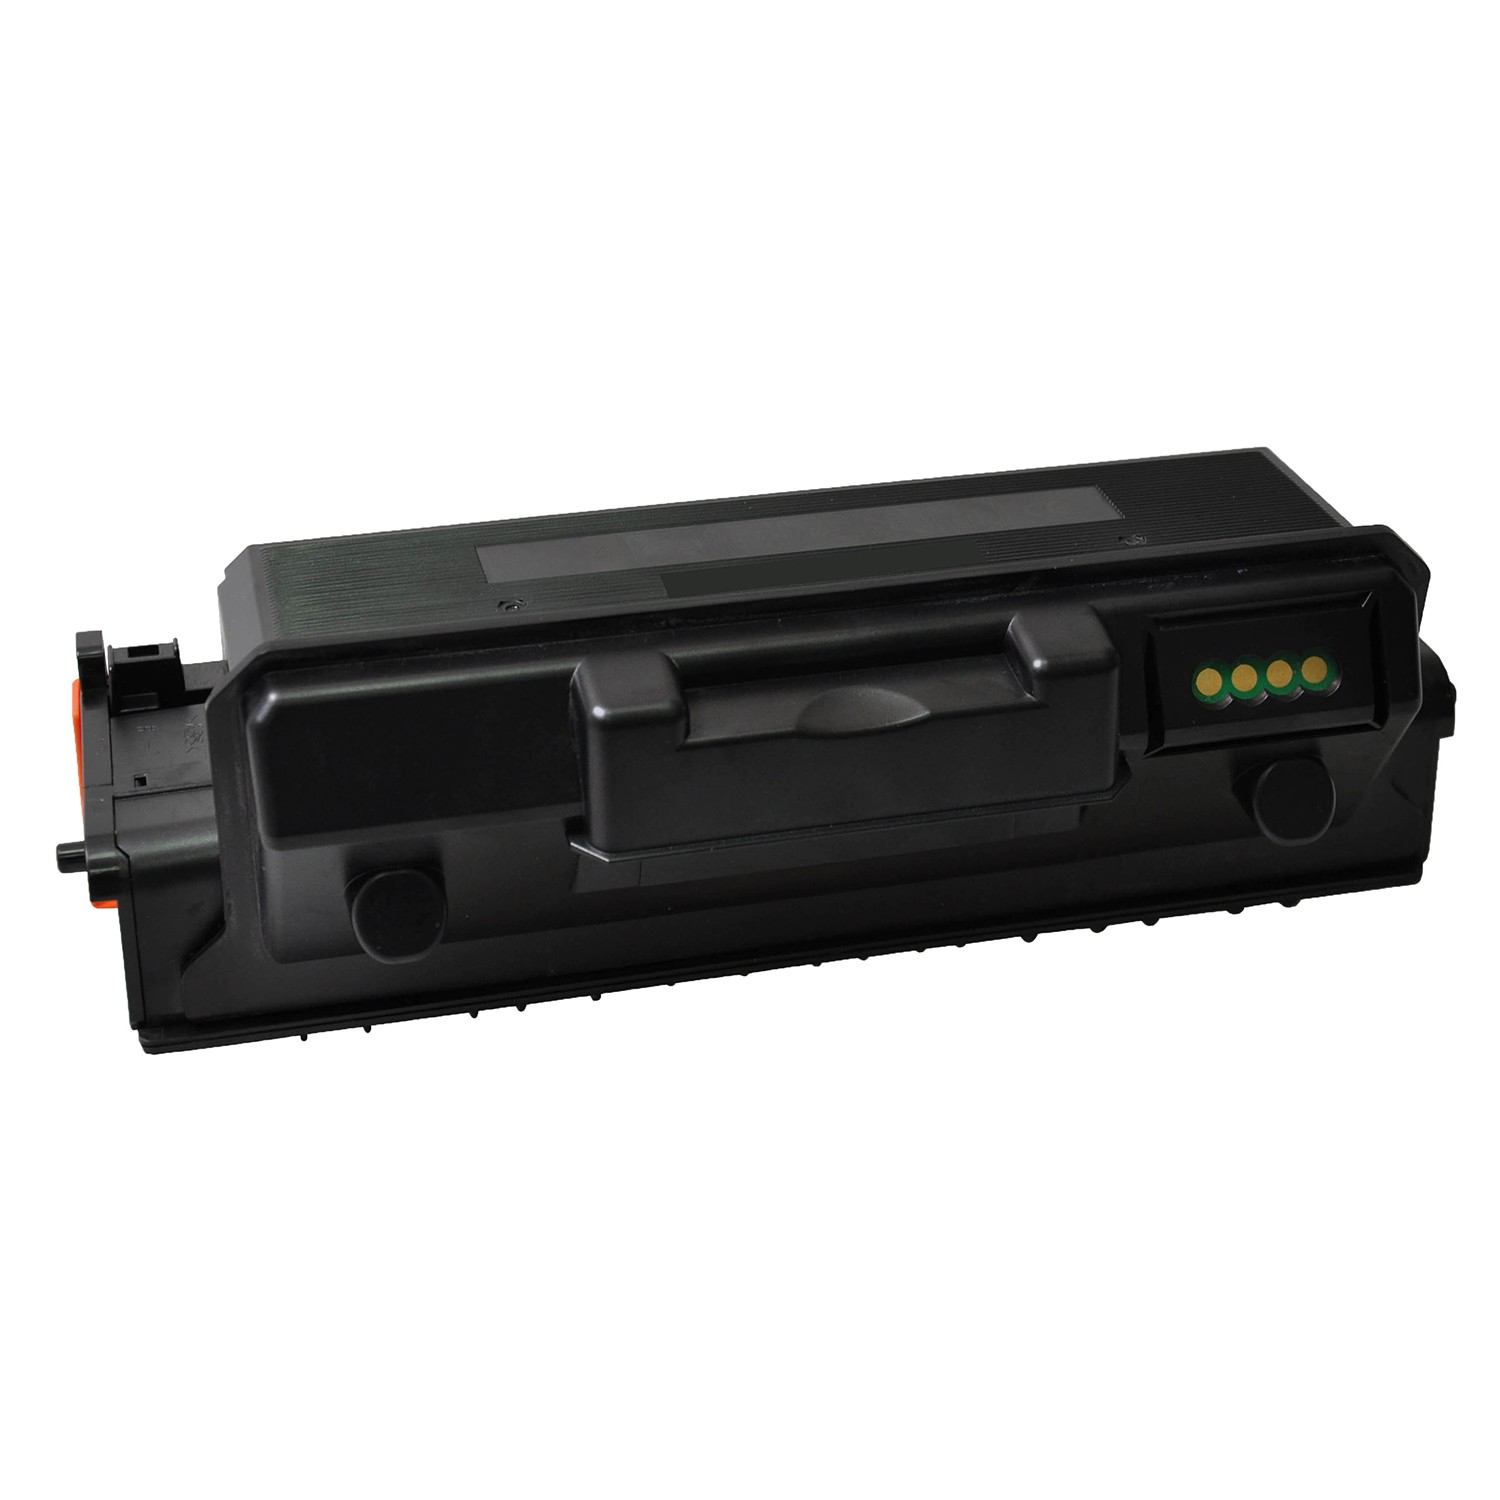 V7 Toner for selected Samsung printers - Replacement for OEM cartridge part number MLT-D204U/ELS